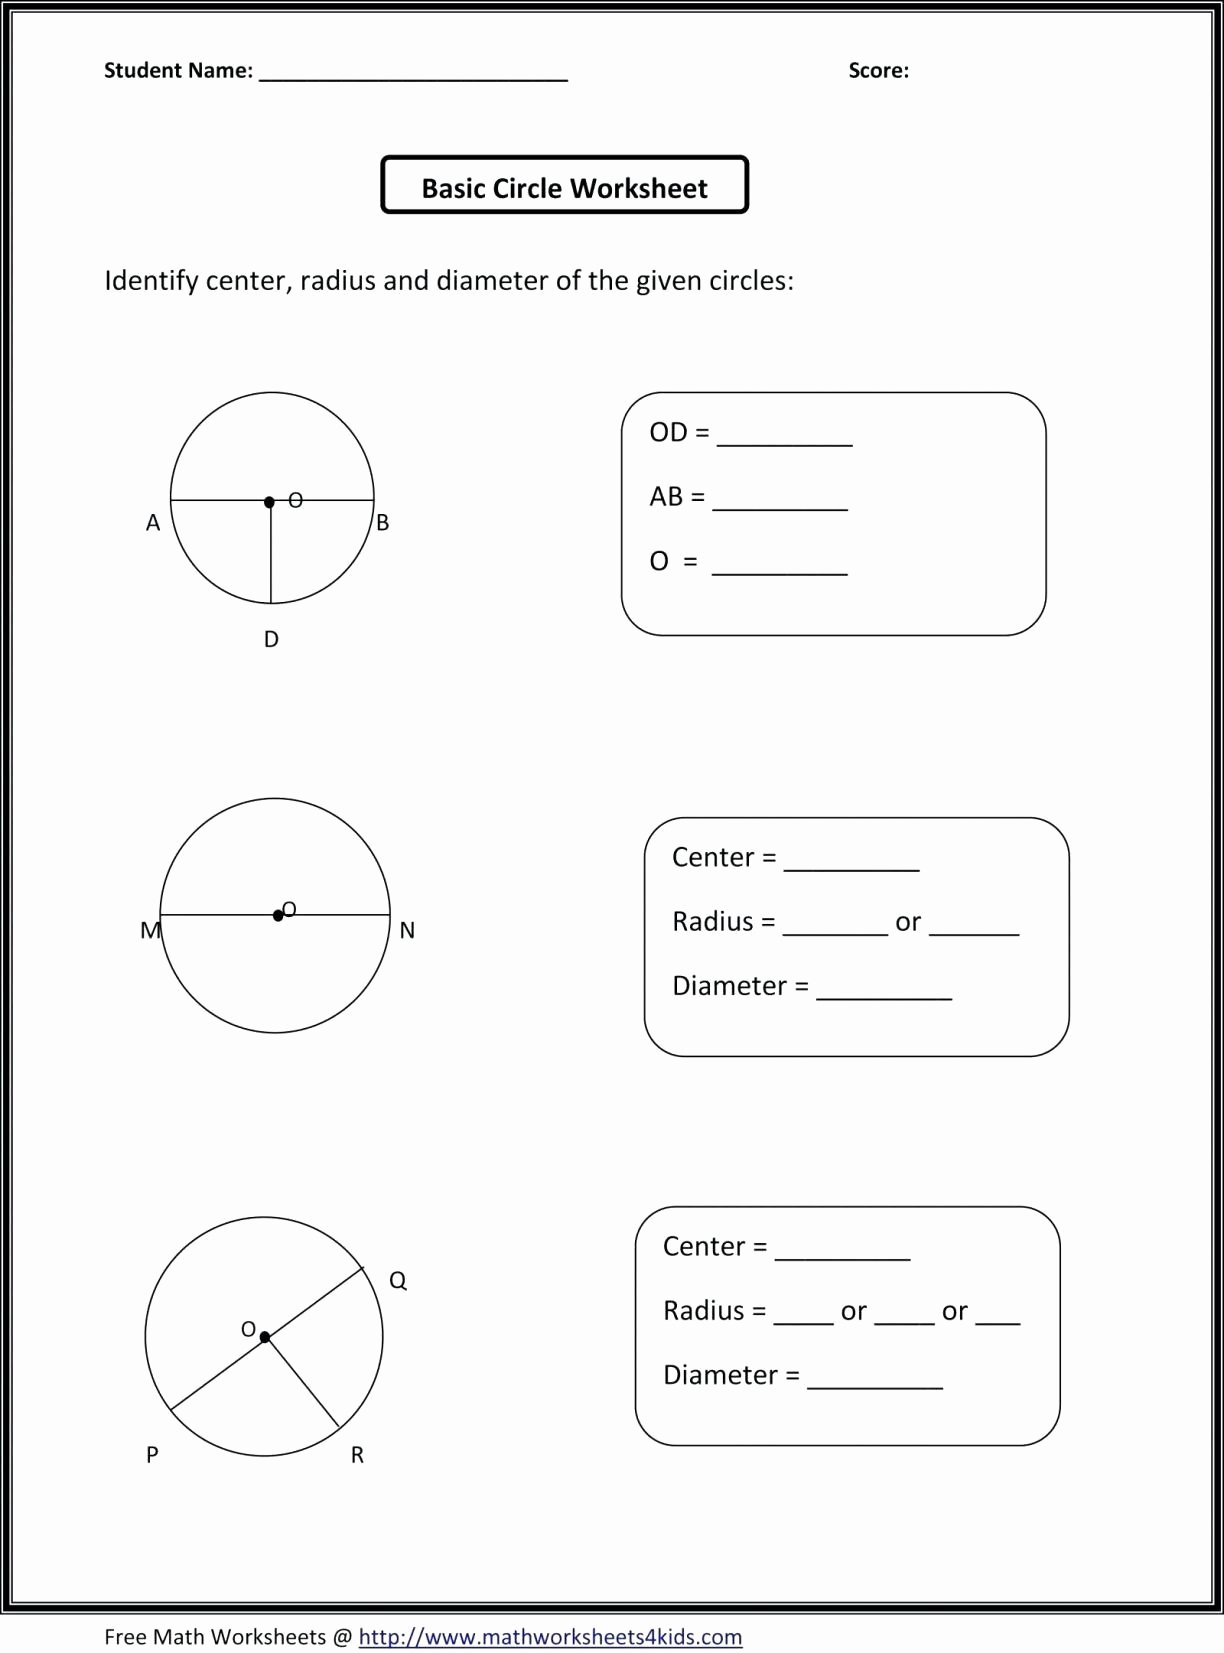 Cnn Students News Worksheet Fresh Cnn Student News Worksheet